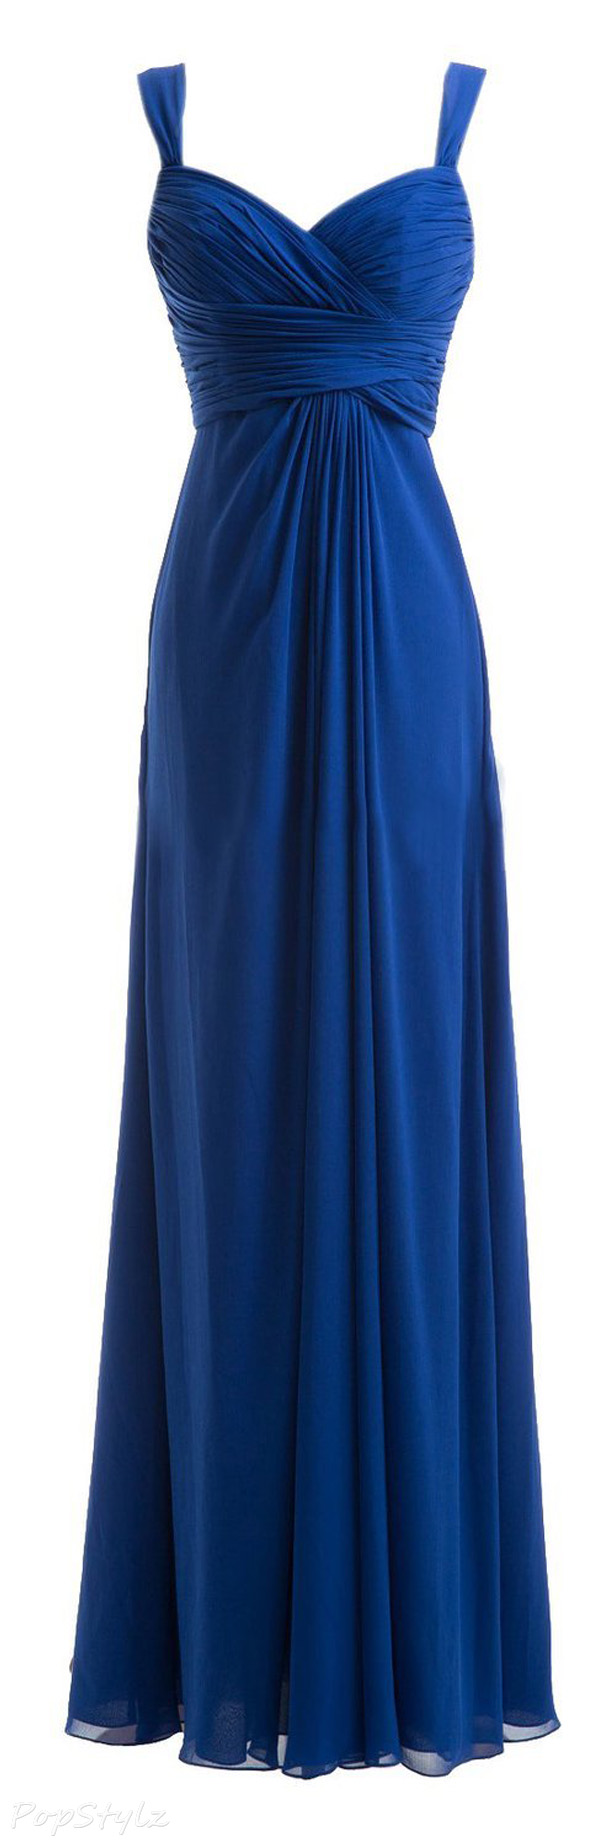 Diyouth Sweetheart Spaghetti Straps Formal Gown